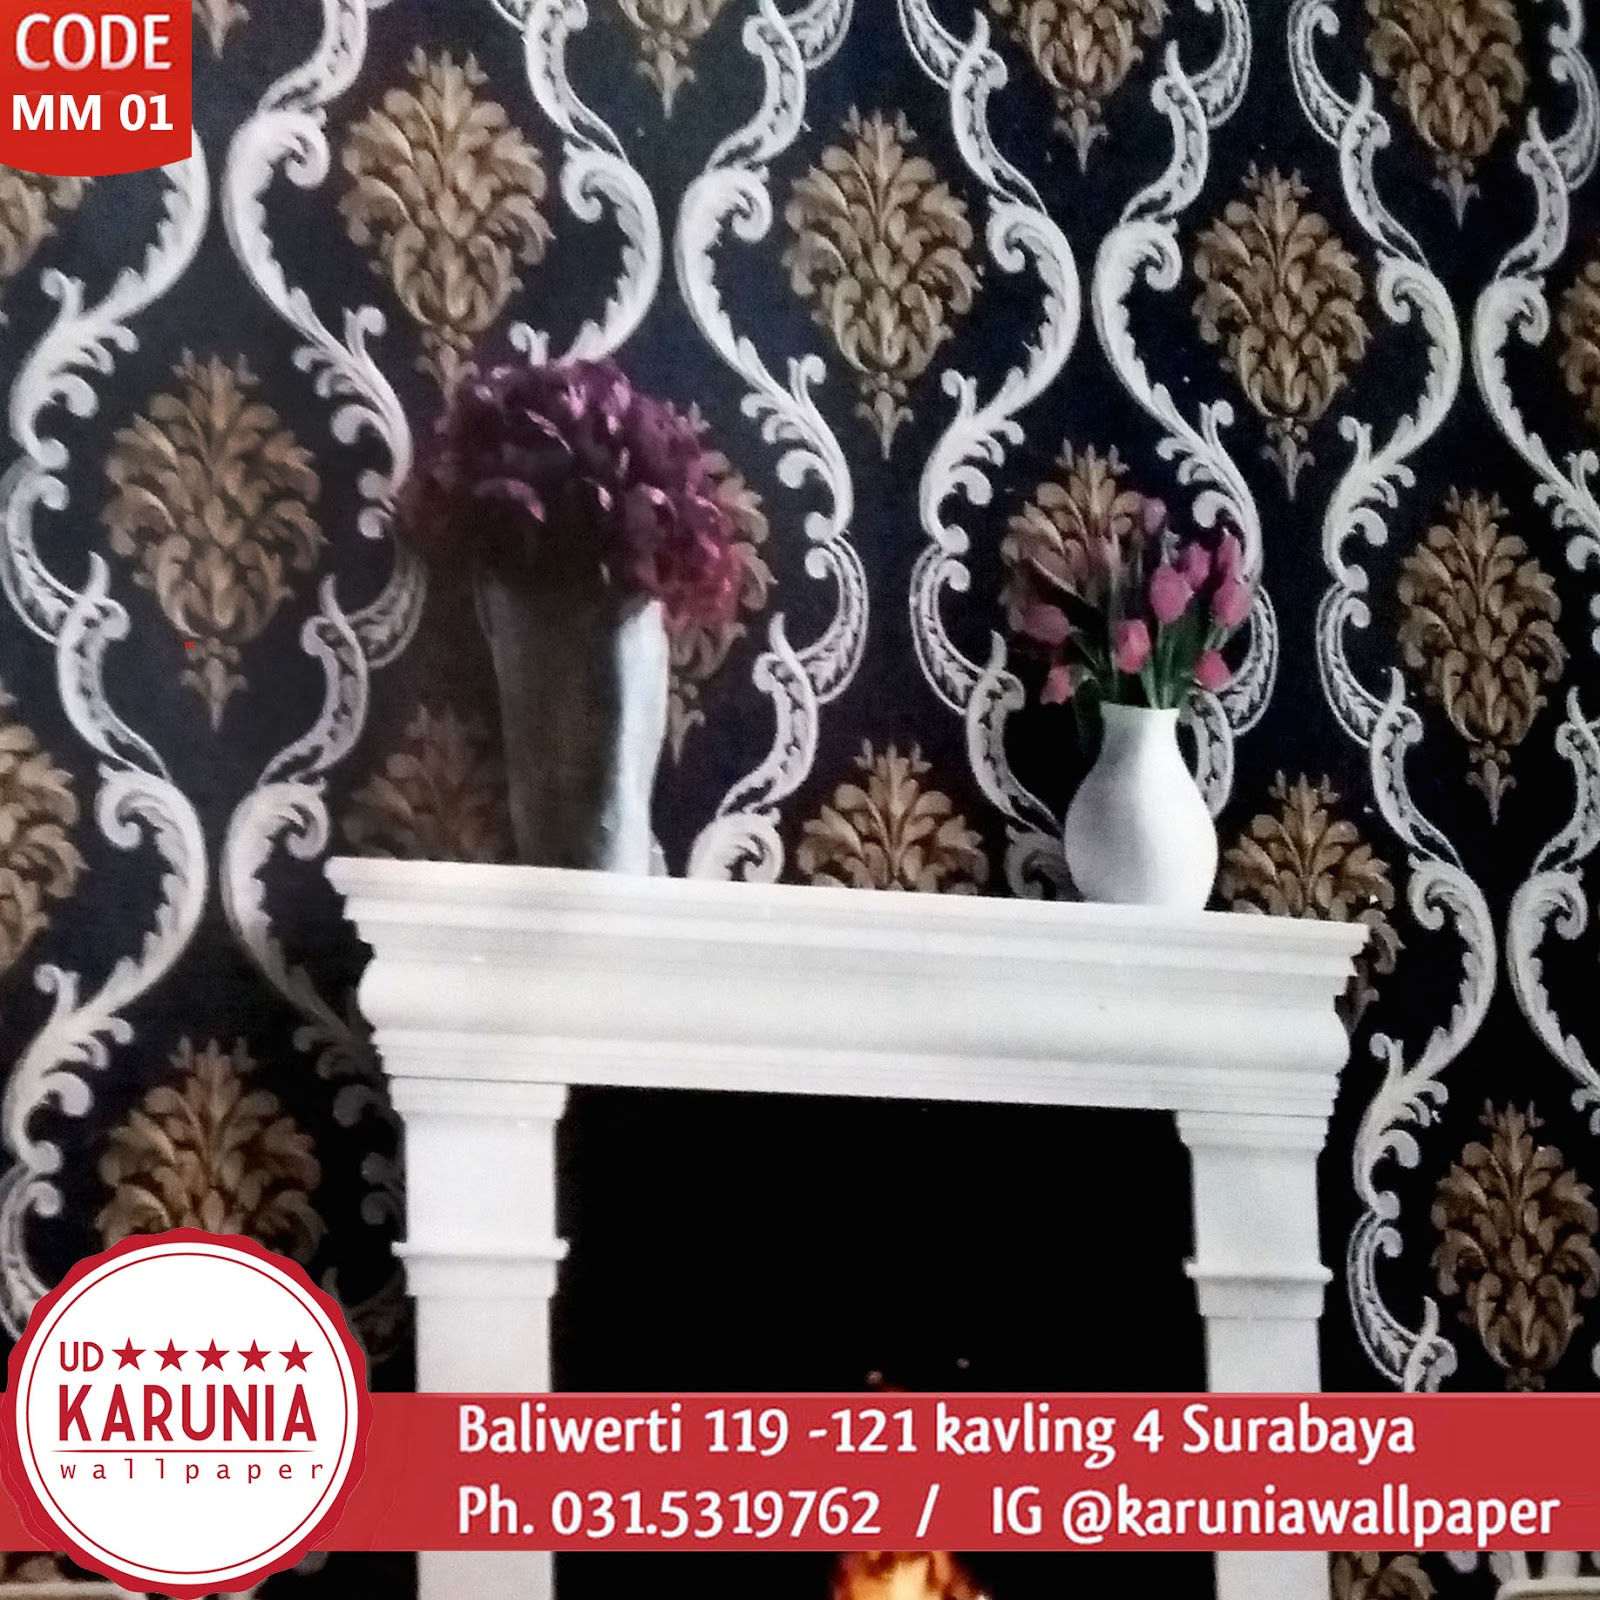 KOLEKSI WALLPAPER KLASIK ORNAMEN KARUNIA WALLPAPER